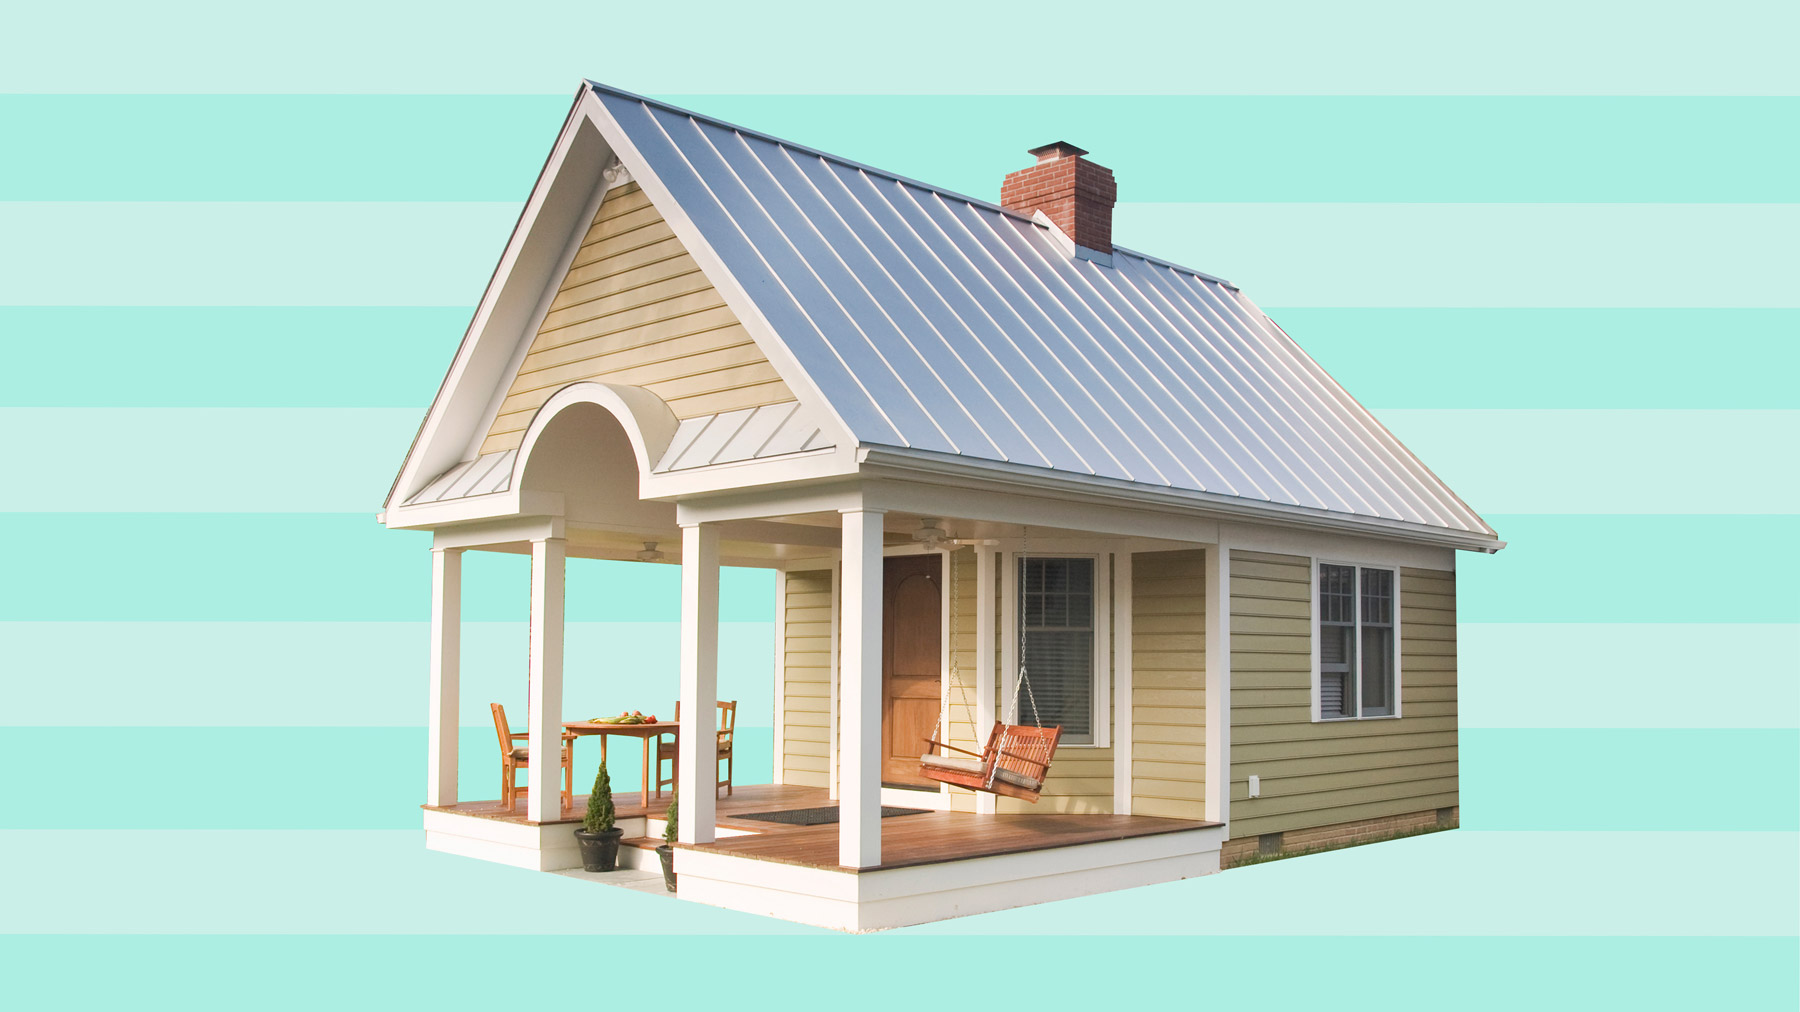 Tiny house and home lifestyle reasons